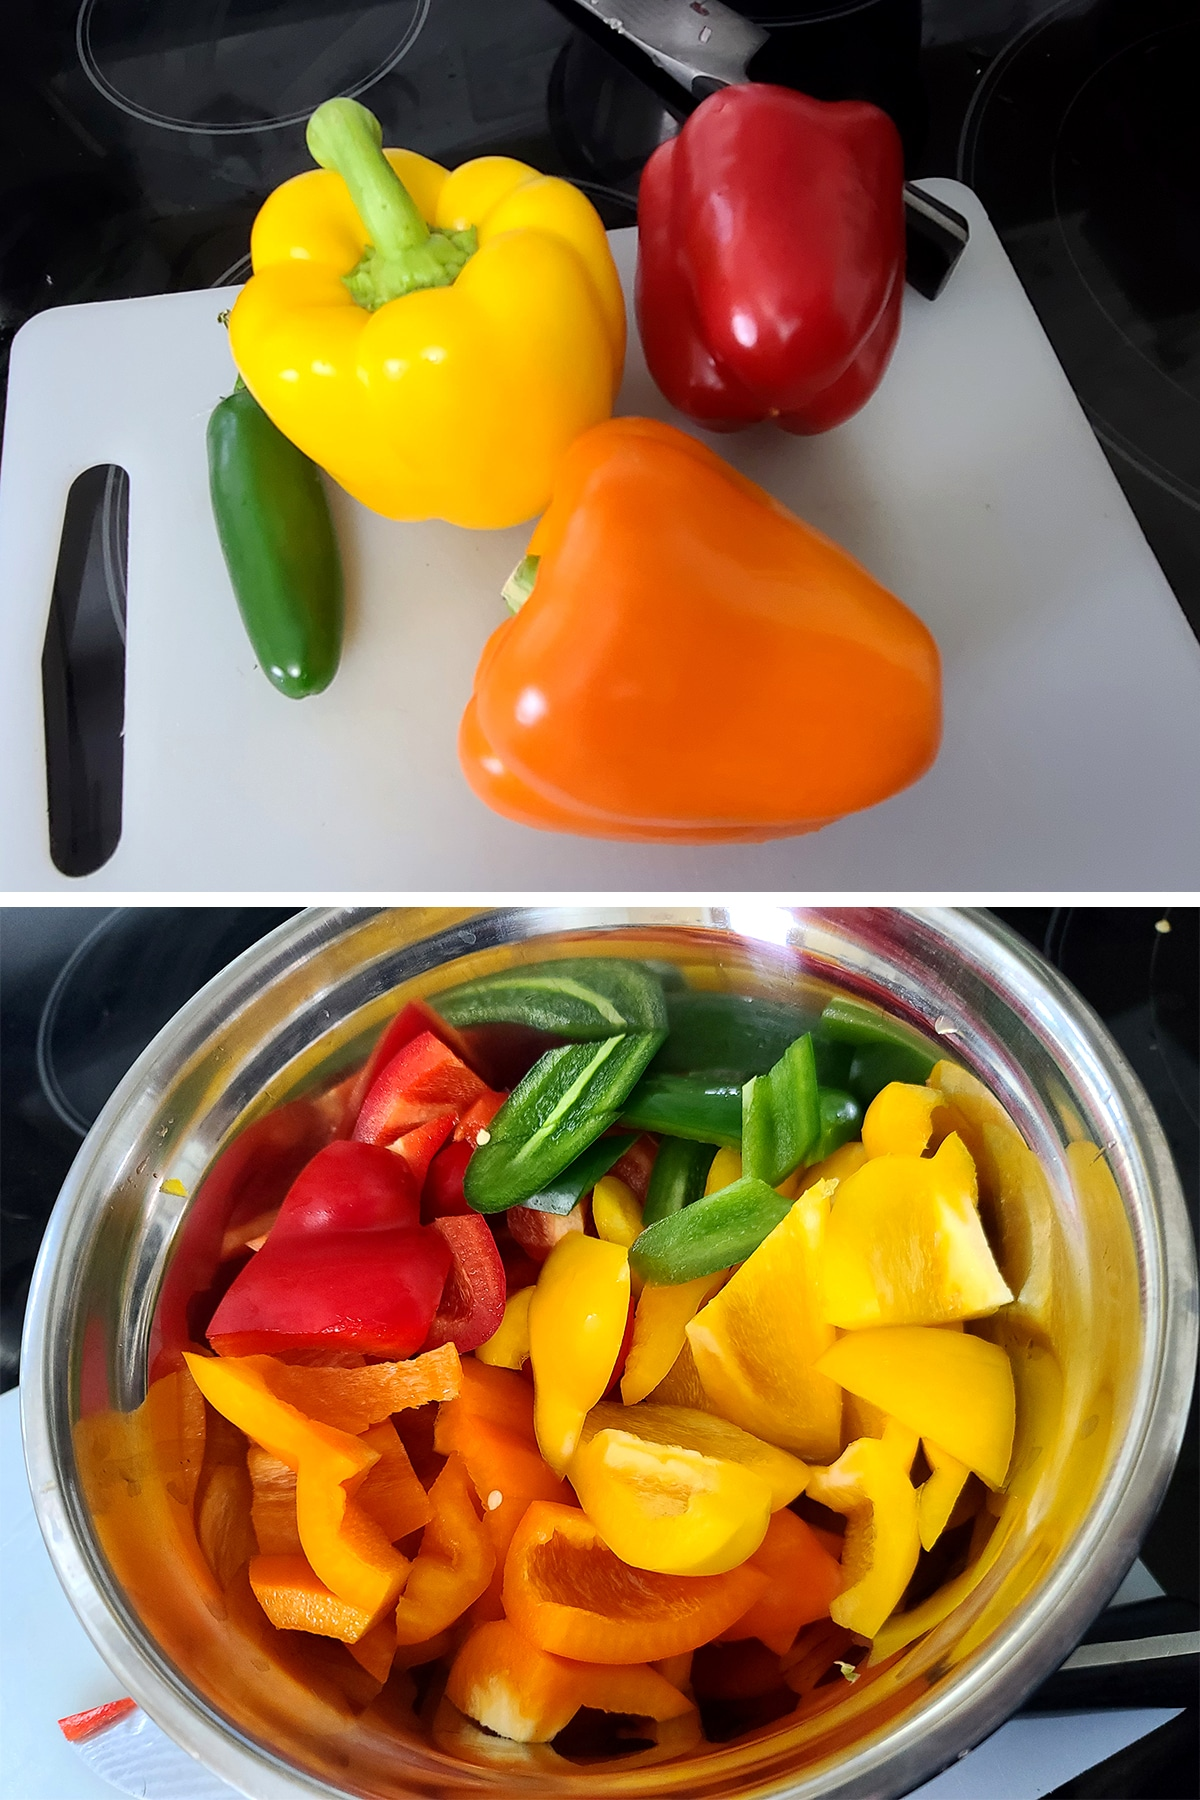 Red, orange, yellow, and jalapeno peppers, before and after being chopped up.